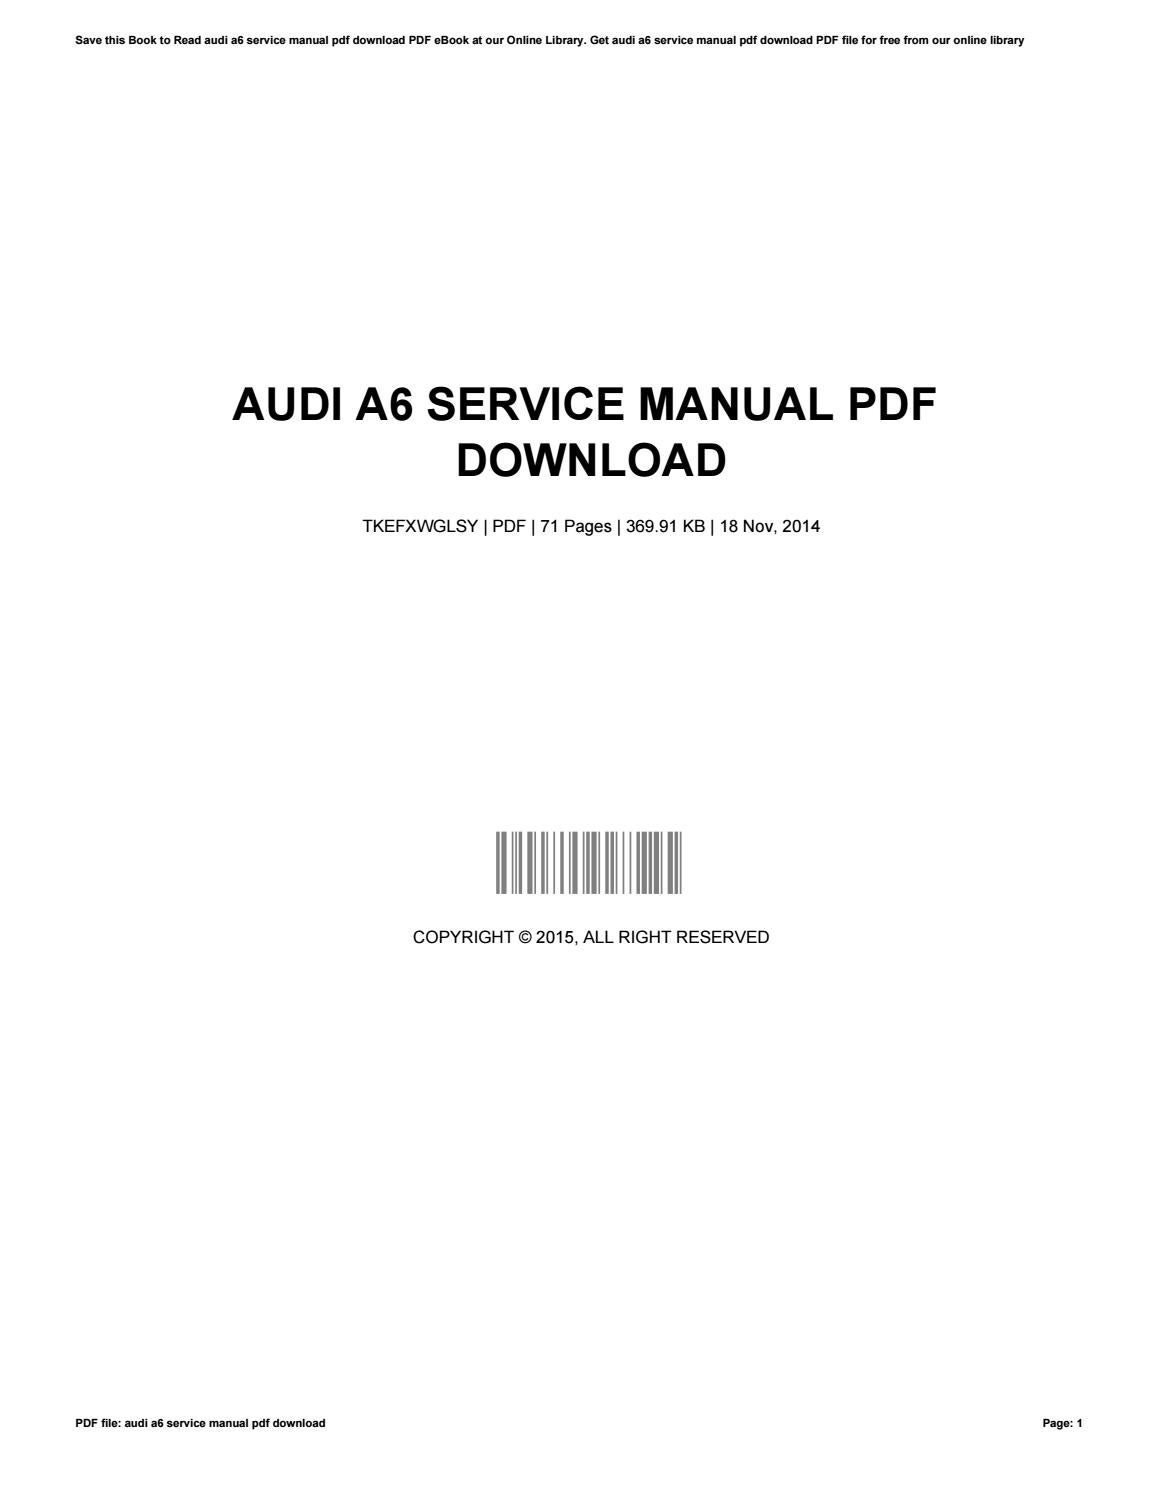 Audi a6 service manual pdf download by charleswallace3585 issuu fandeluxe Choice Image